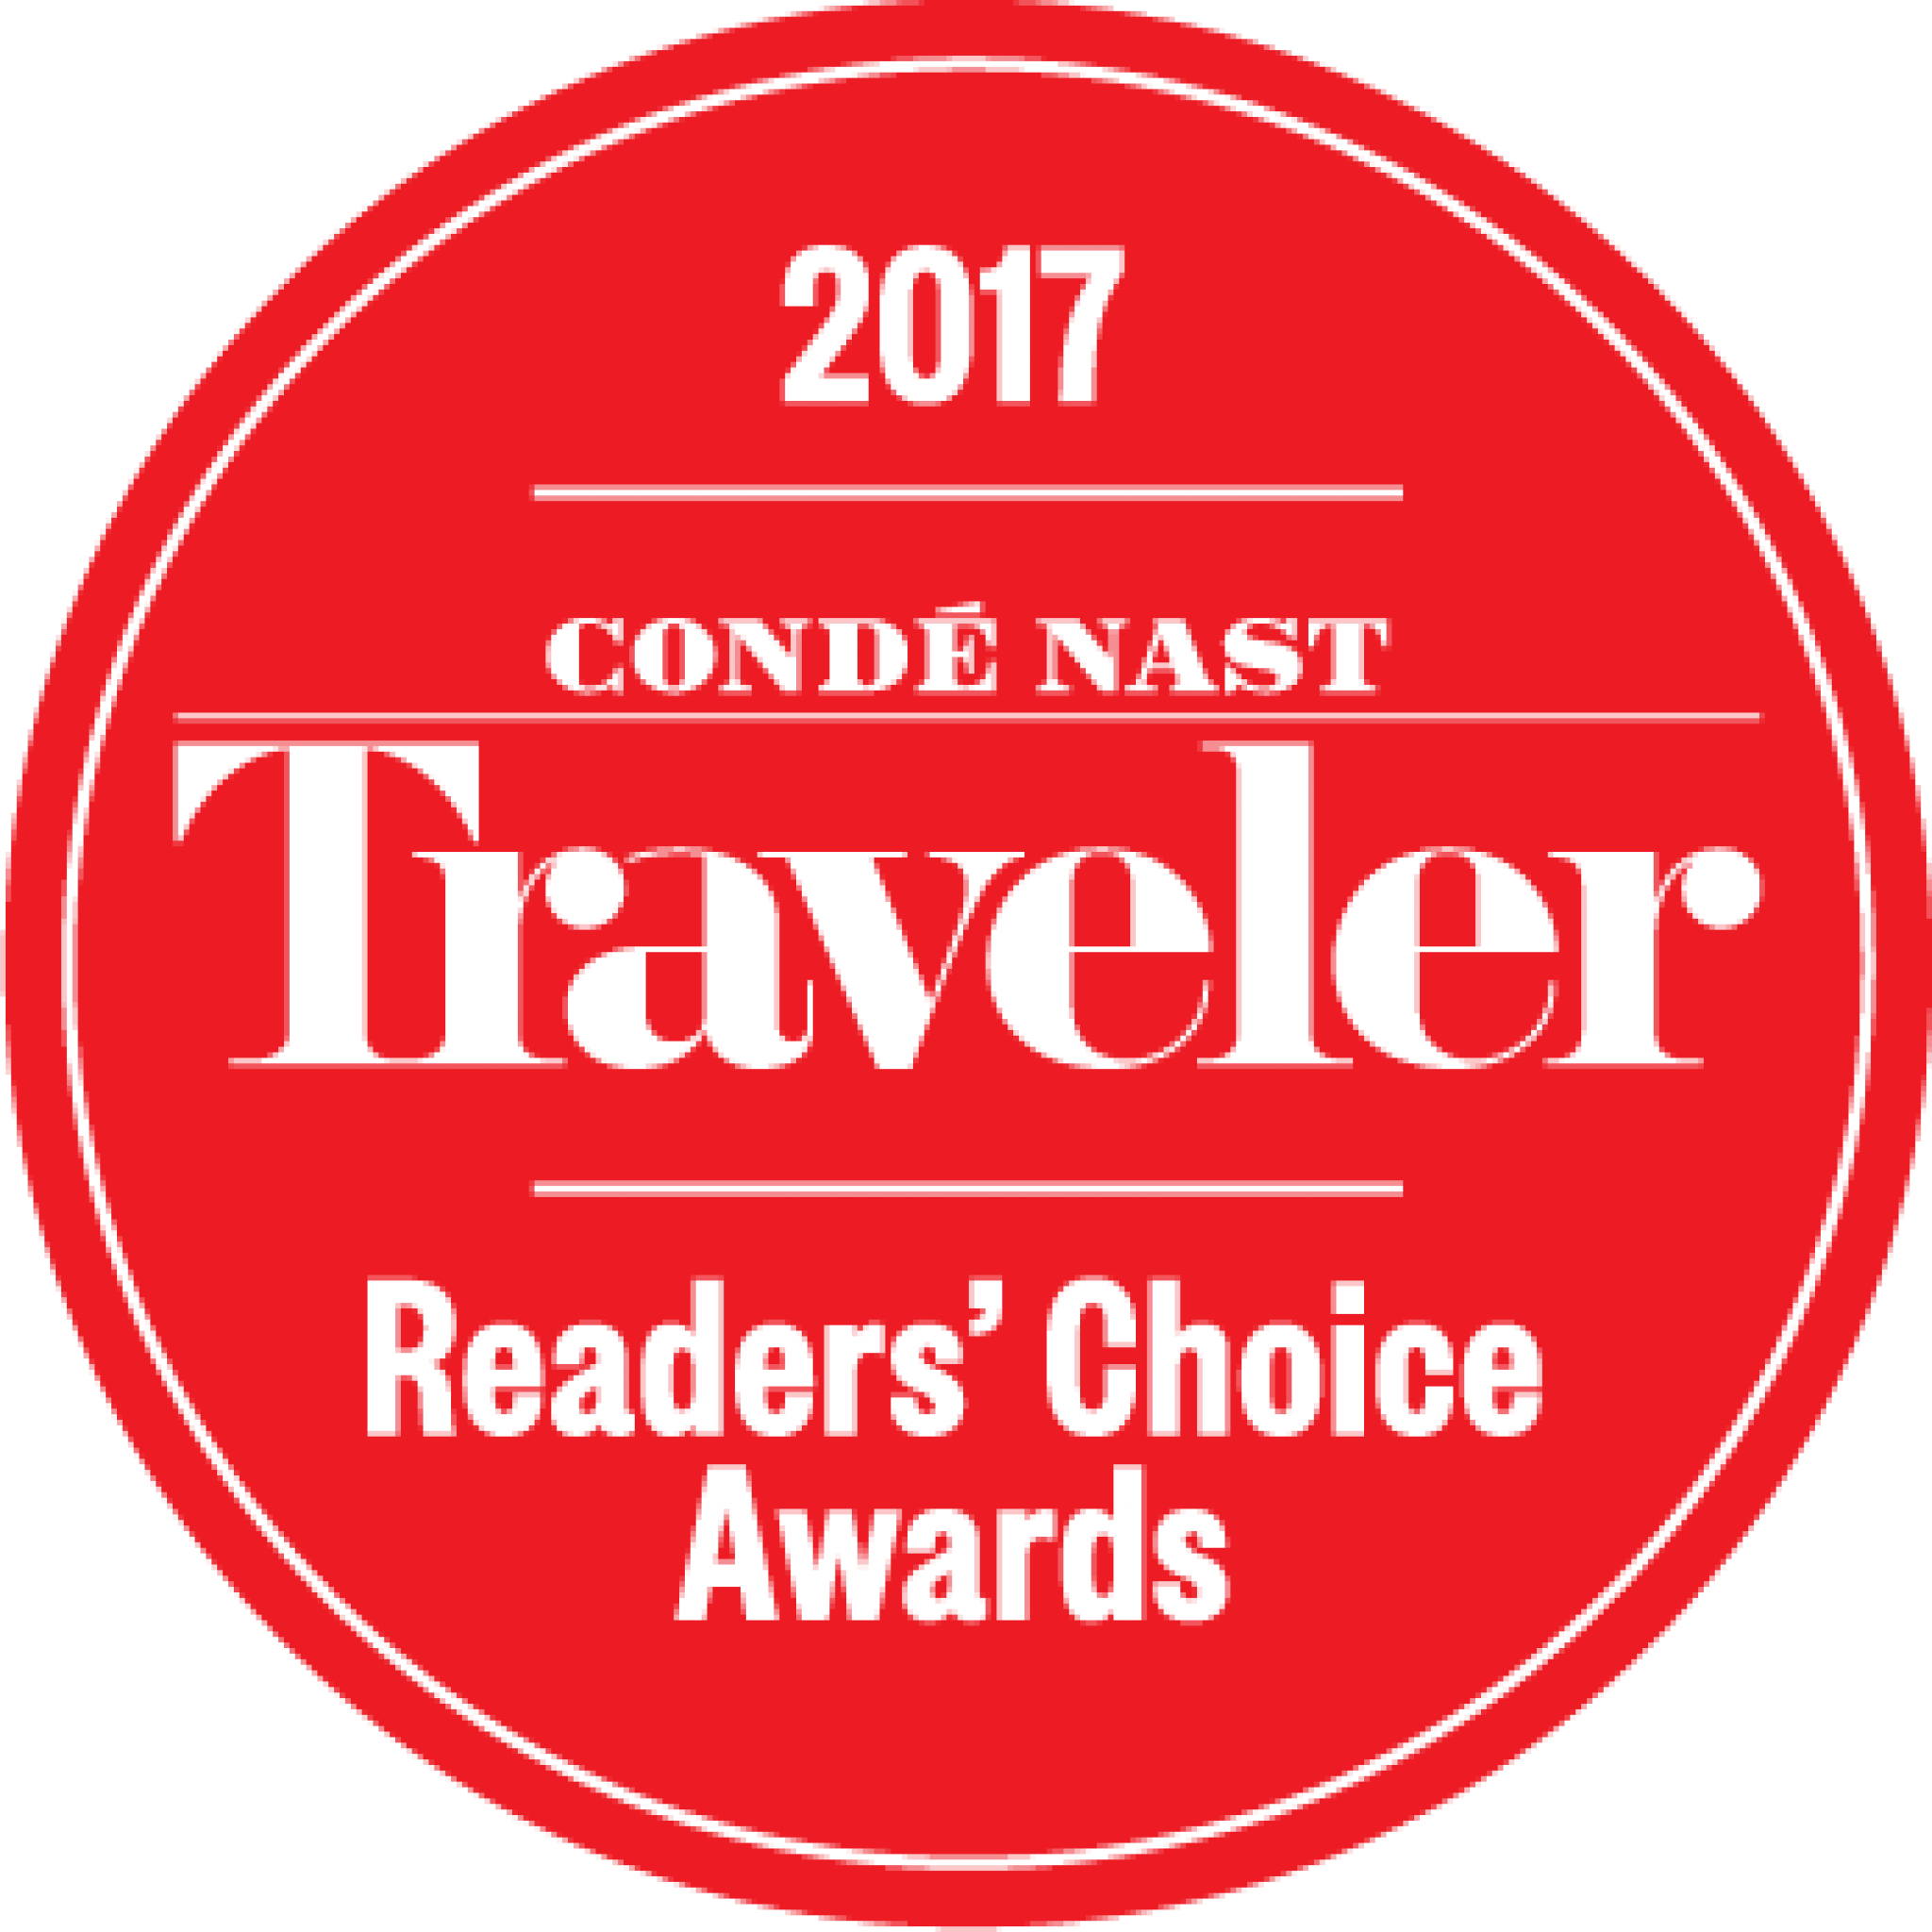 Patmos Aktis Suites & Spa in Condé Nast Traveler 2017 Readers' Choice Awards